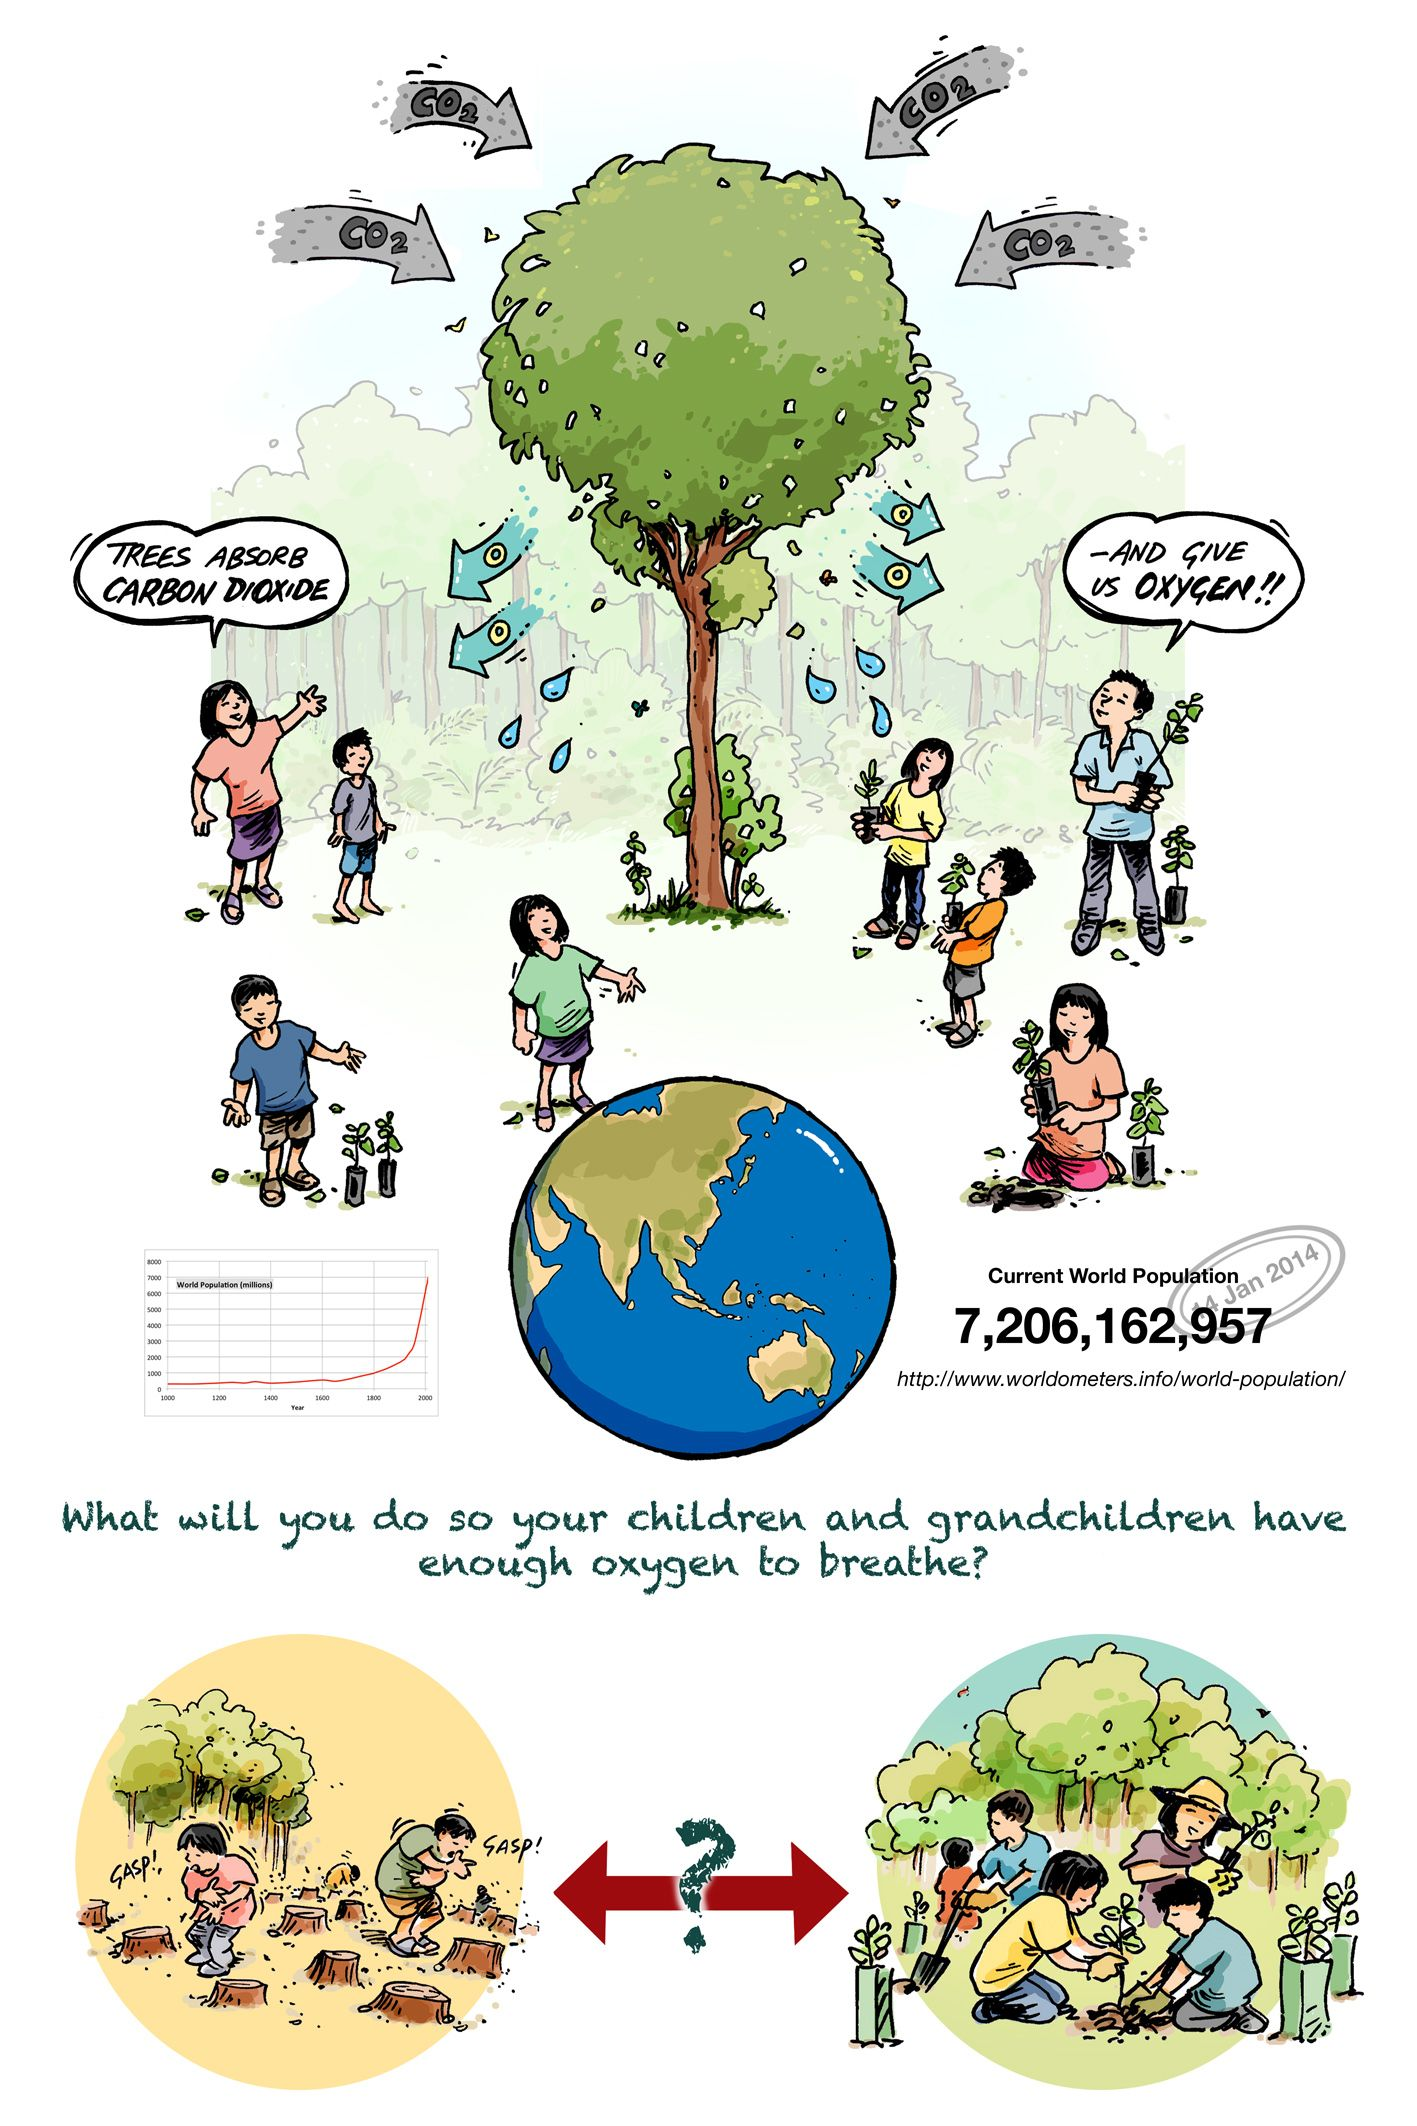 medium resolution of support our goal www aridzoneafforestation org aza aridzoneafforestation safetree afforestation plant trees forests saveearth saveplanet activism